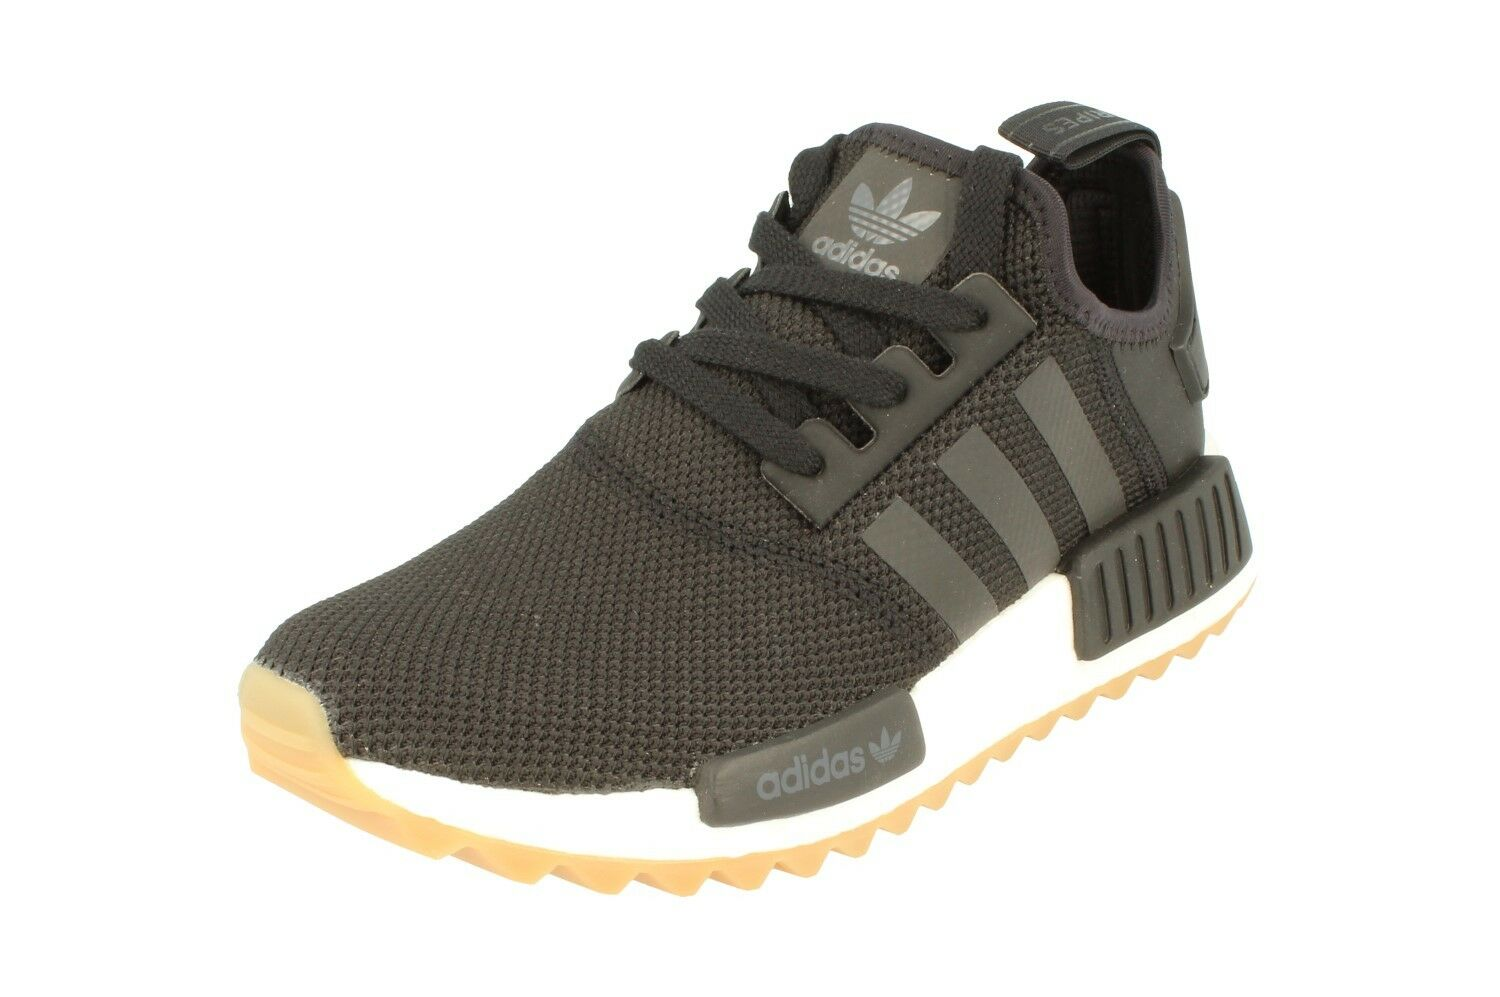 Adidas Originals NMD_R1 Trail W Sneakers Unisex S81046 Running Trainers Sneakers W b4177b